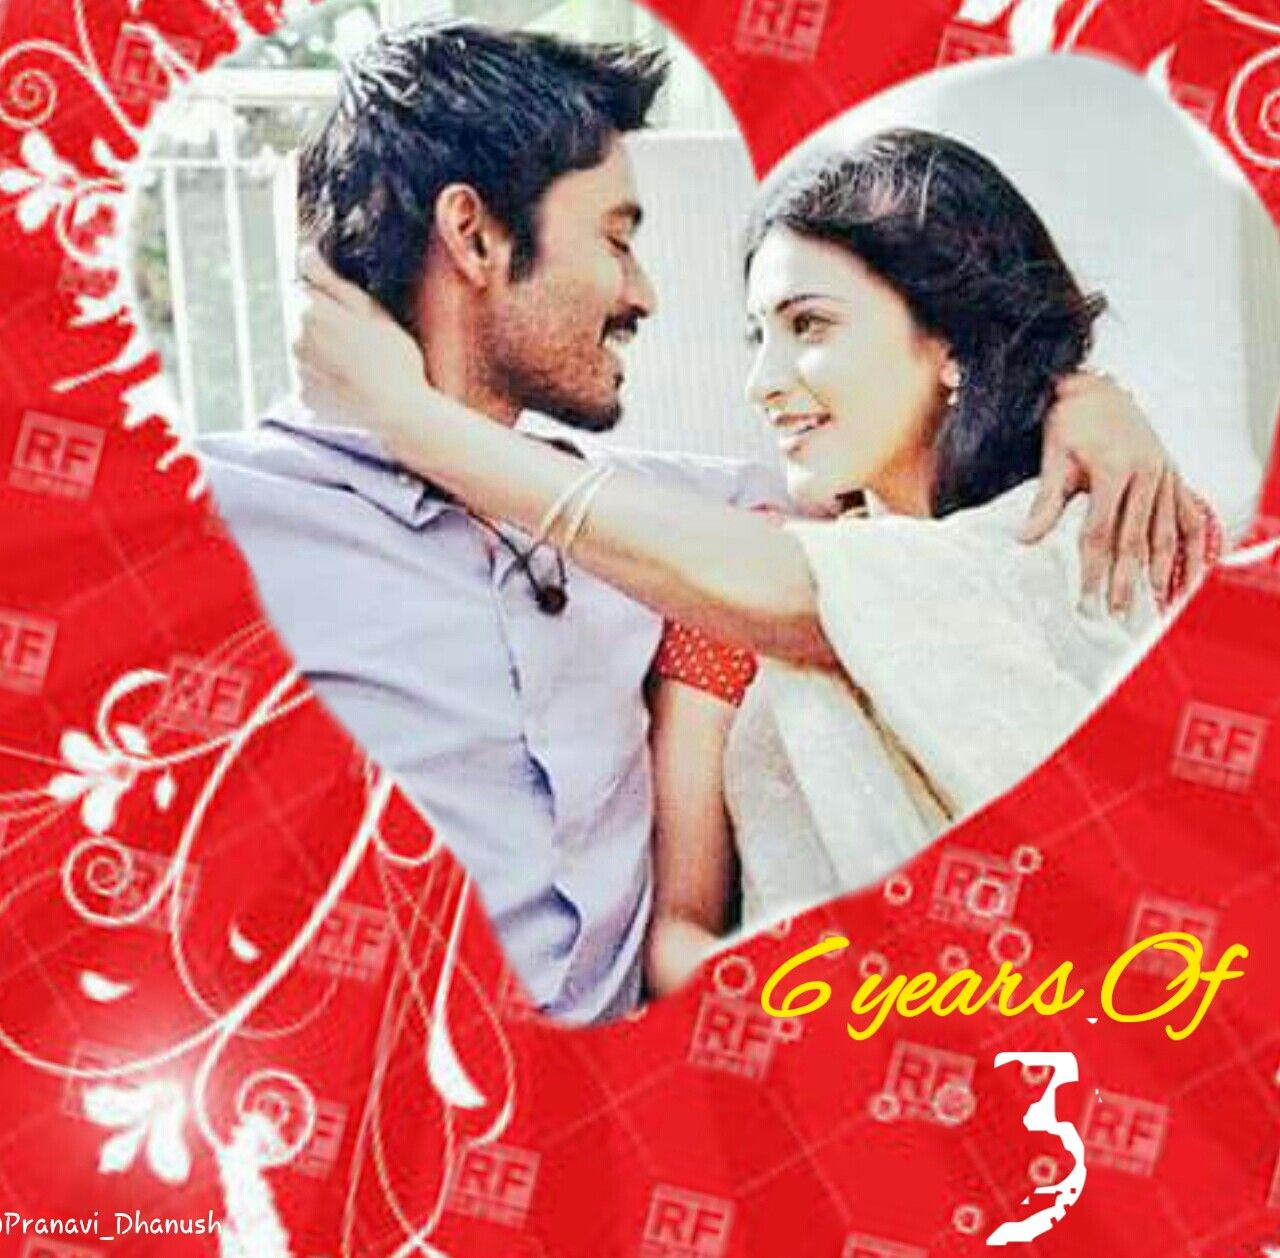 6 years of Pain Of Love 3    Ram And Janai Love forever